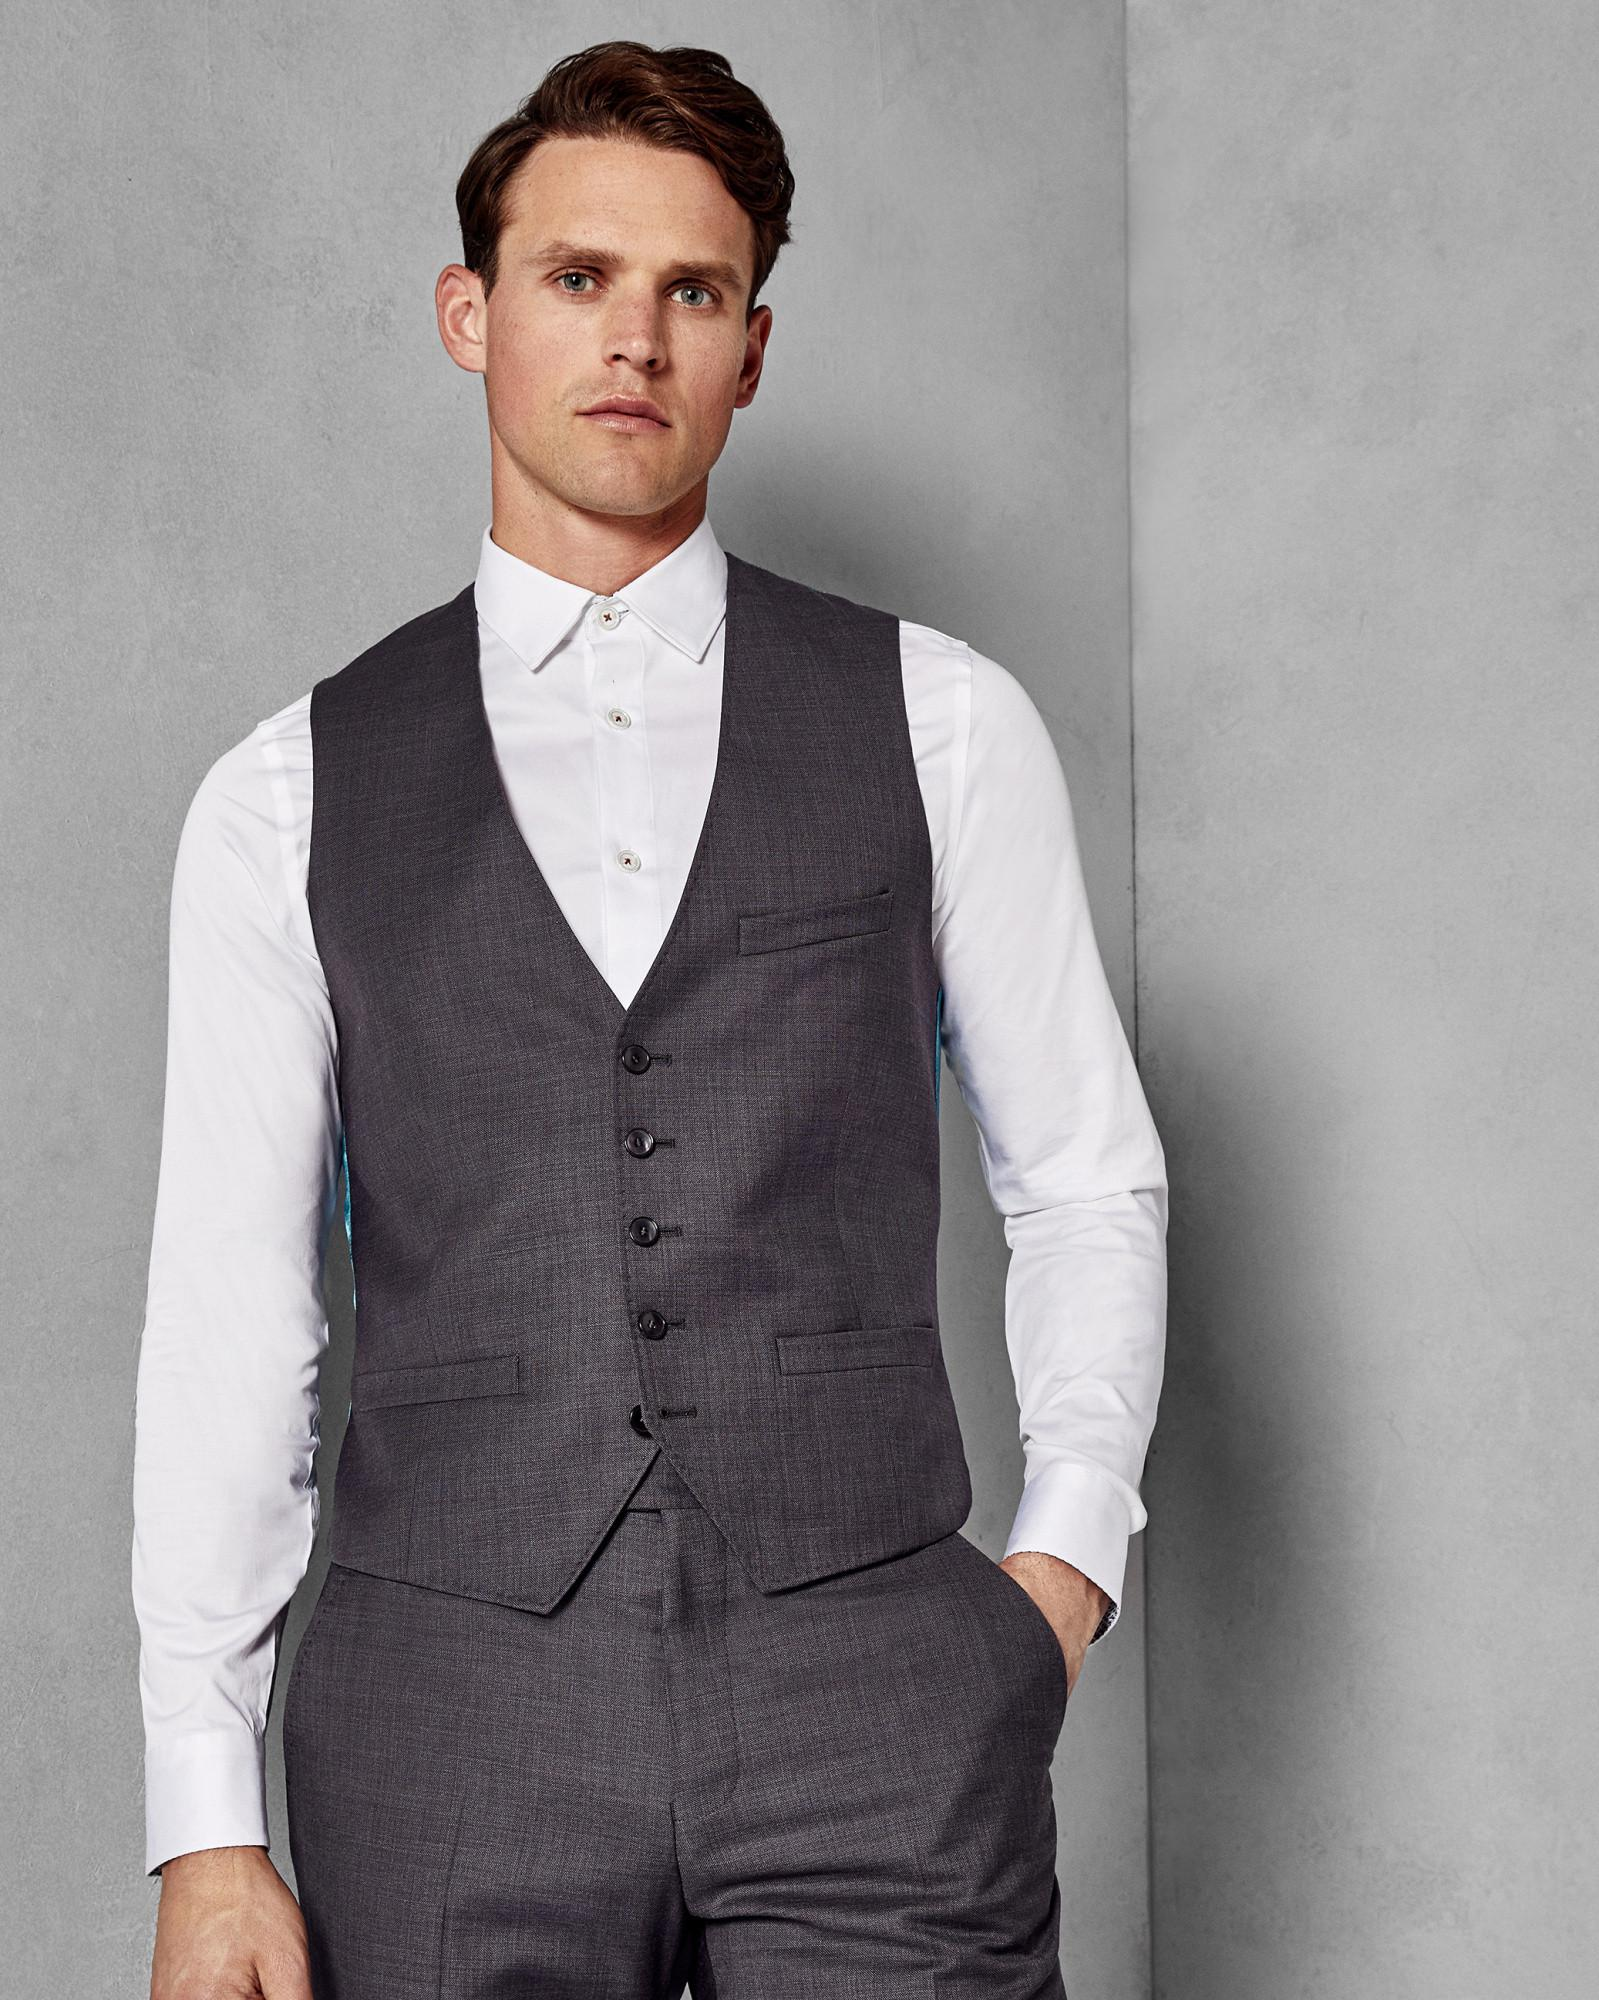 12d5d01d93c2 Lyst - Ted Baker Debonair Slim Plain Wool Waistcoat in Gray for Men